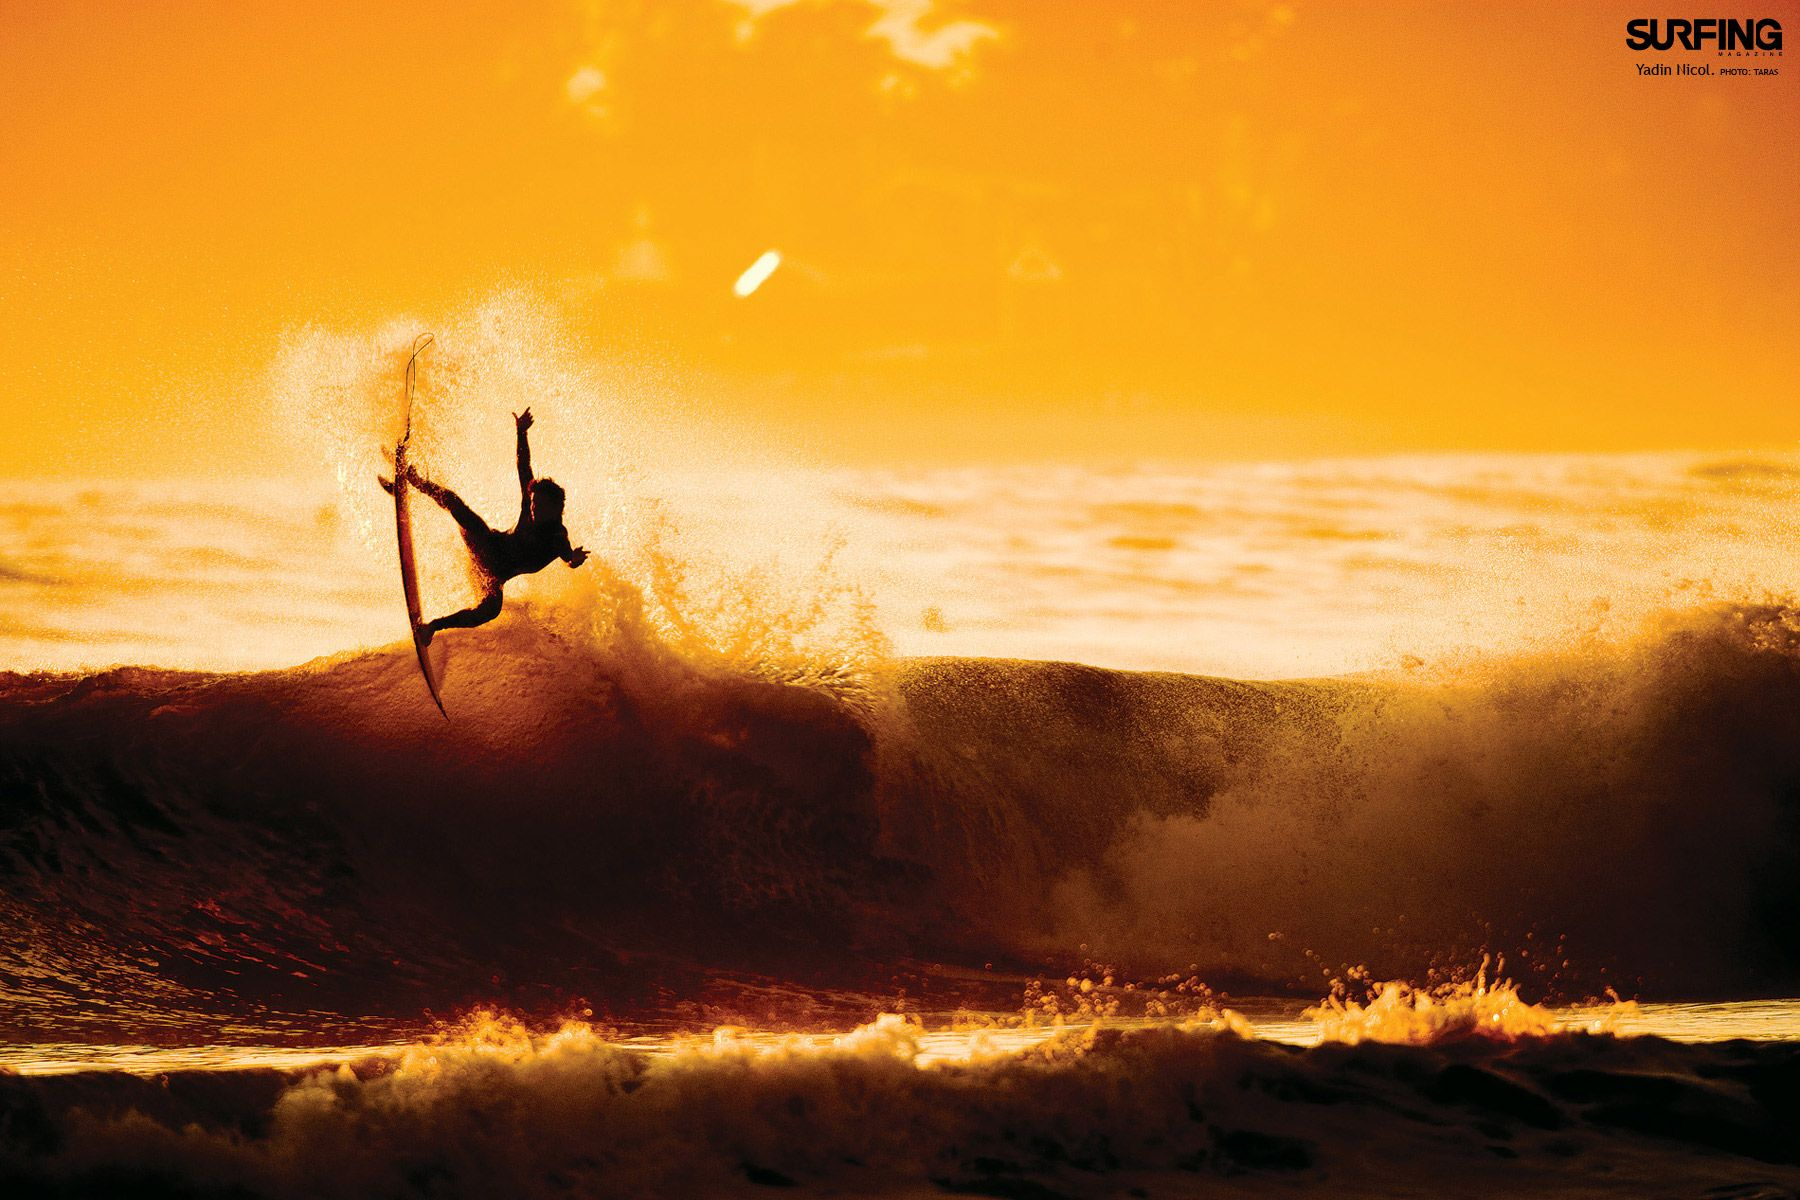 May Issue Wallpaper Surfing Wallpaper Sunset Surf Best